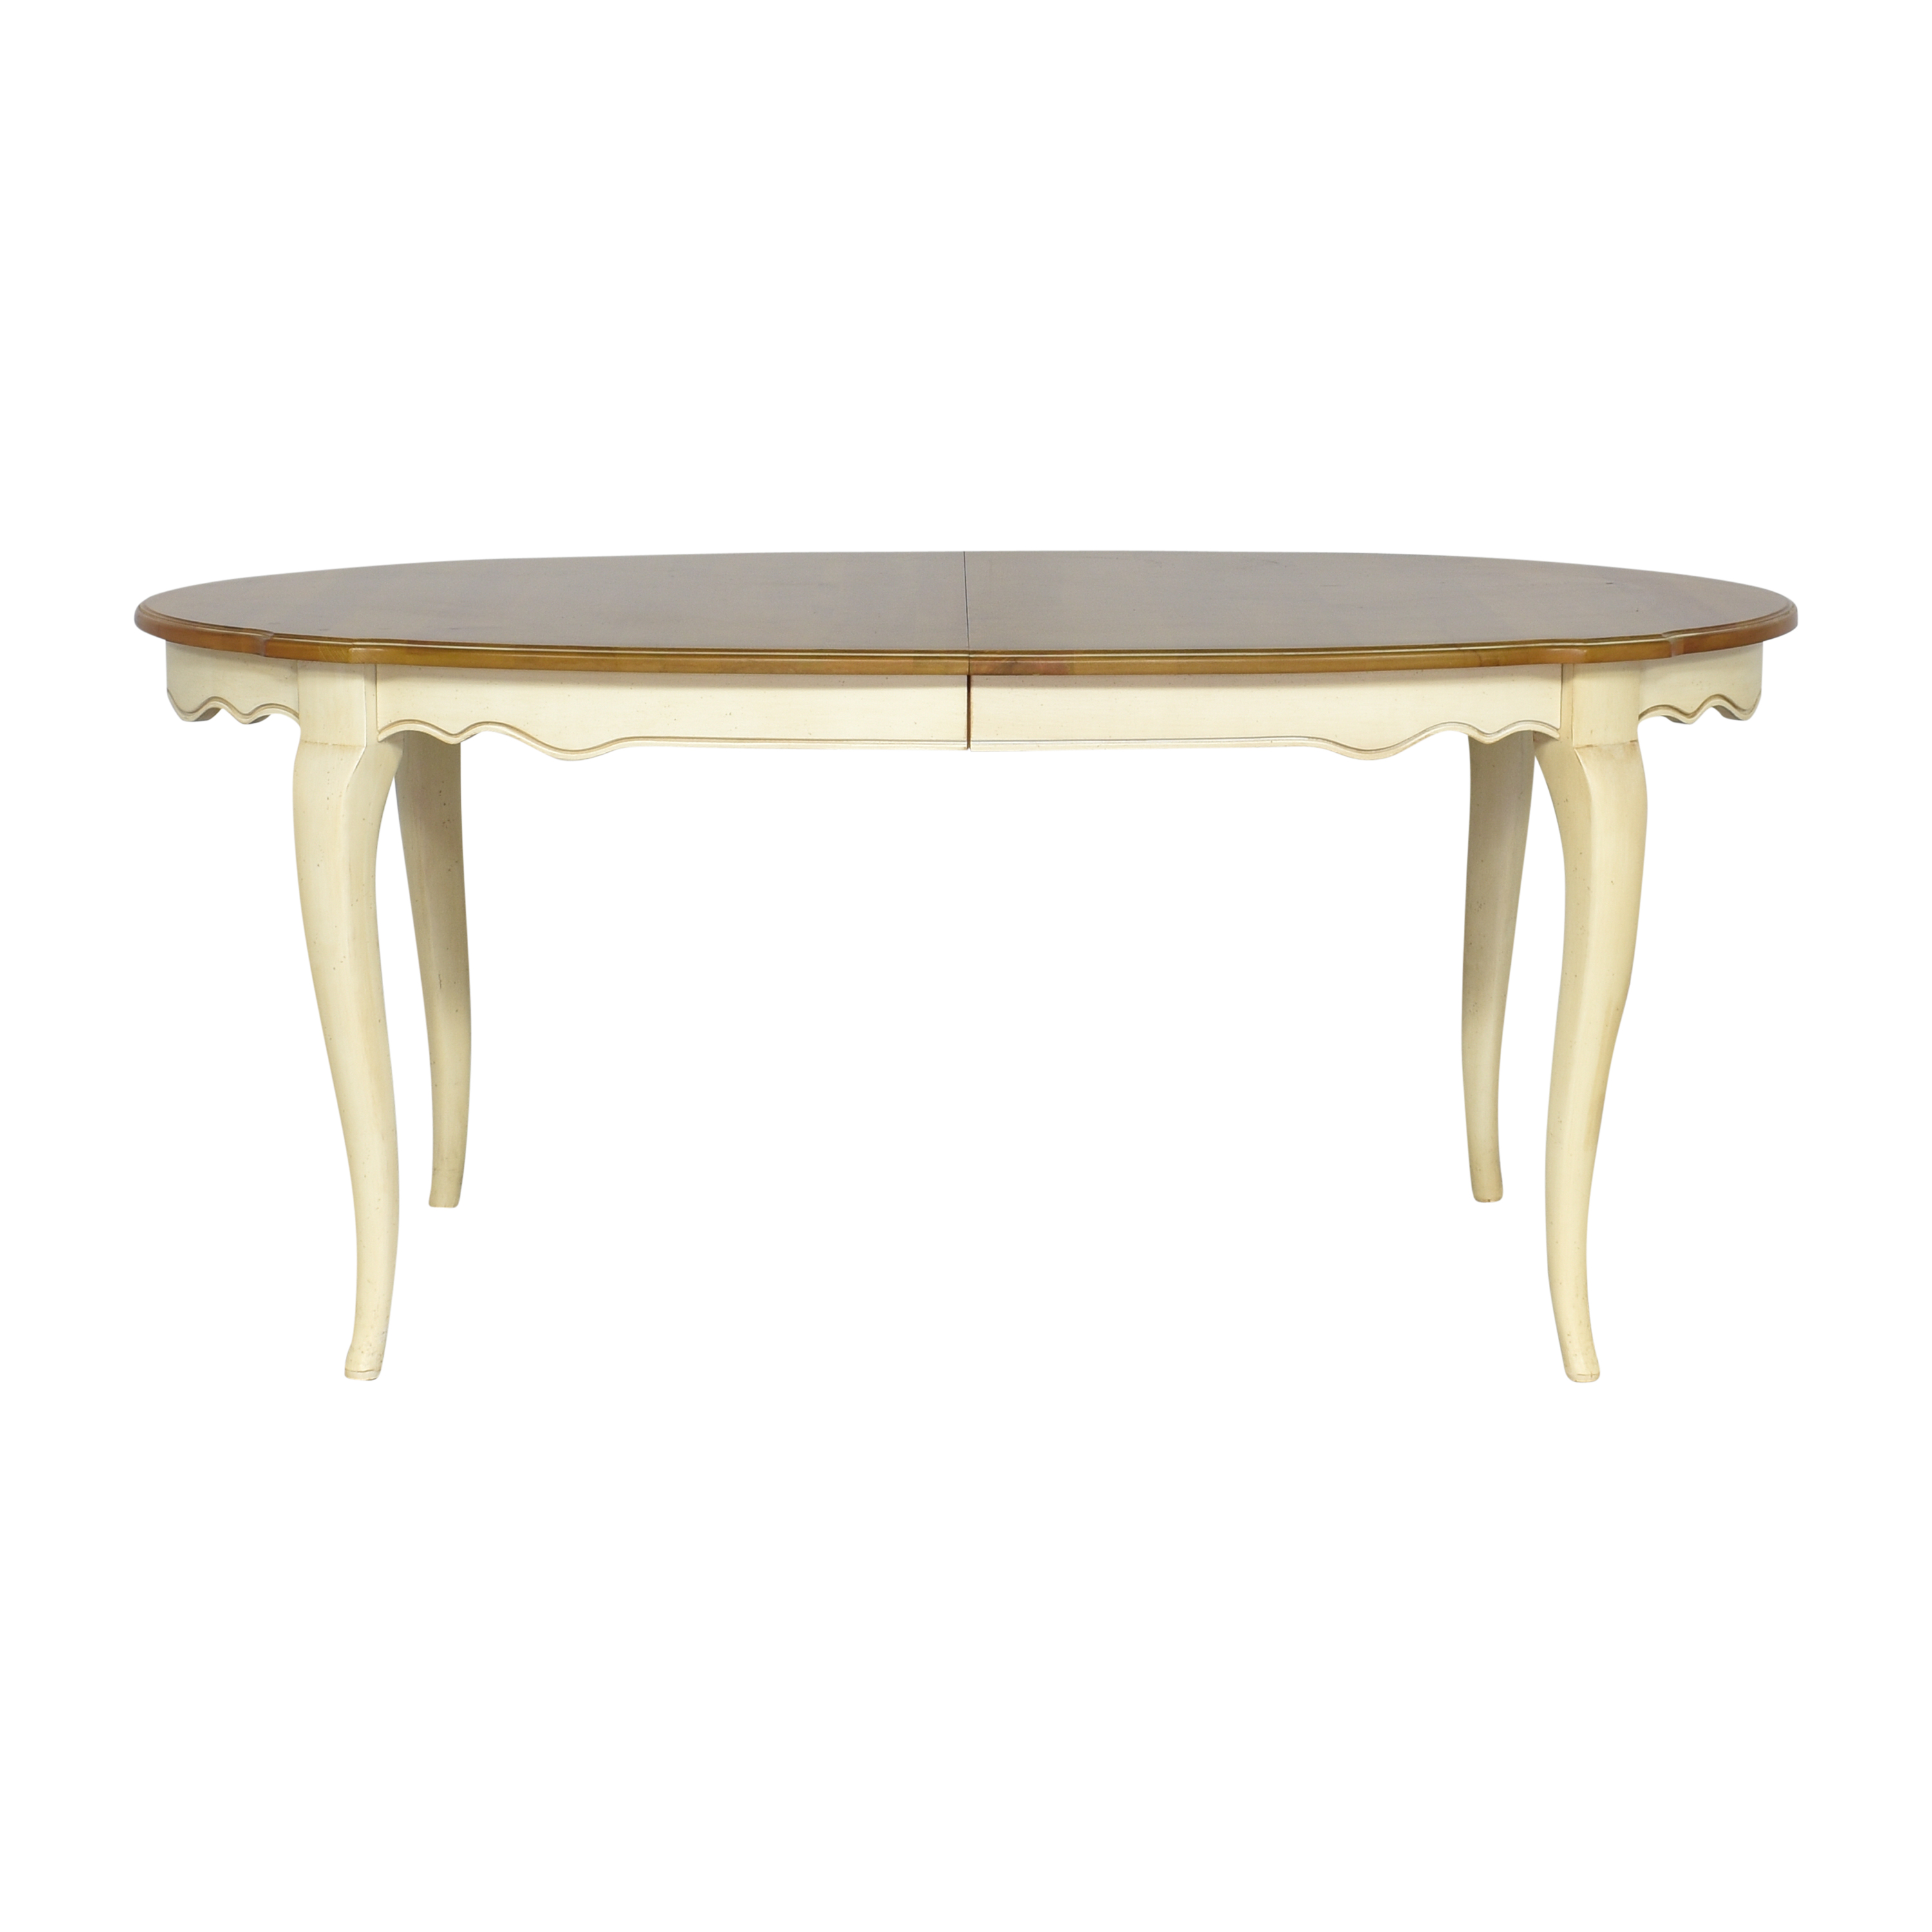 Ethan Allen Ethan Allen Country French Extendable Dining Table for sale